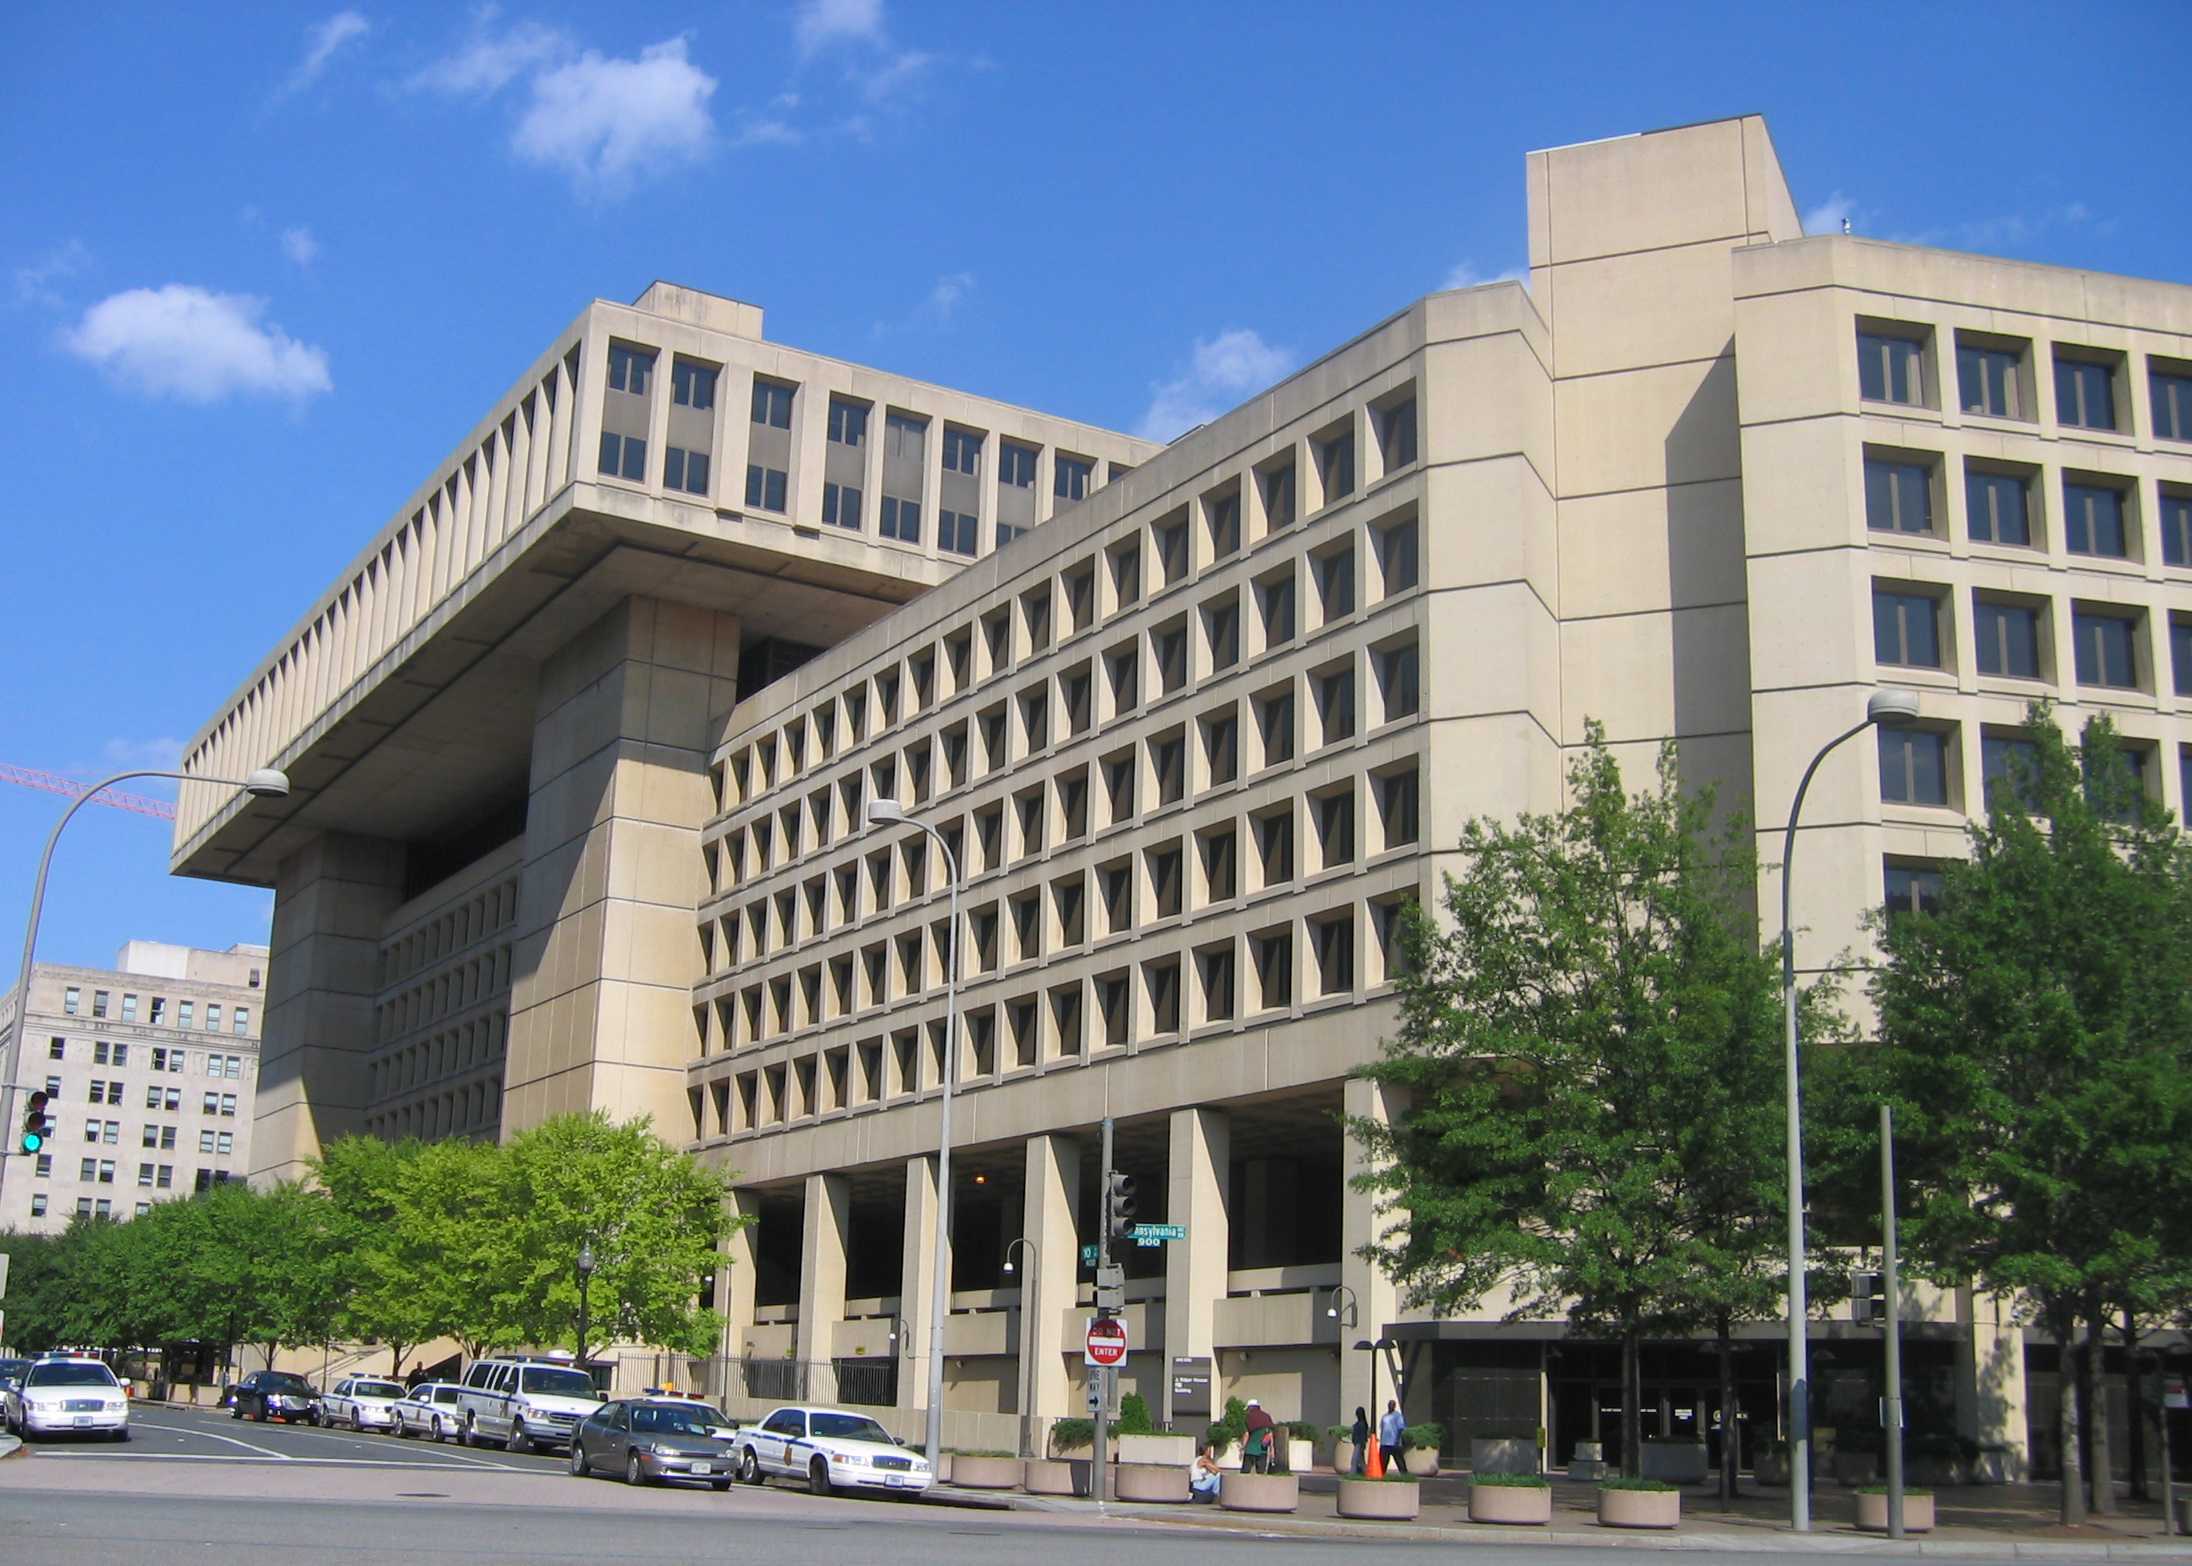 Image result for images of fbi building